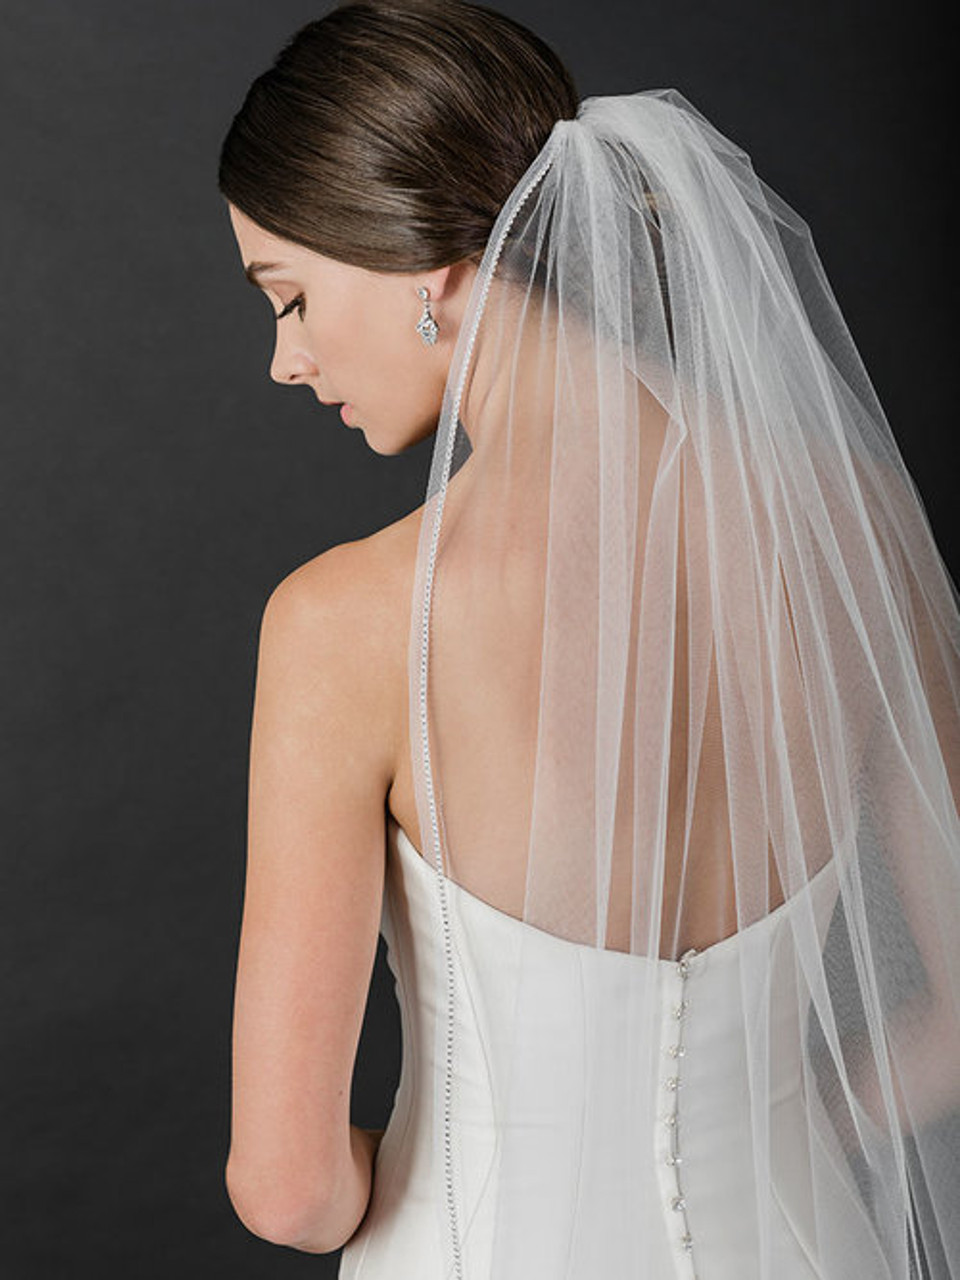 Bel Aire Bridal Veil  V7512 - 1-tier fingertip with horsehair and rhinestone edge